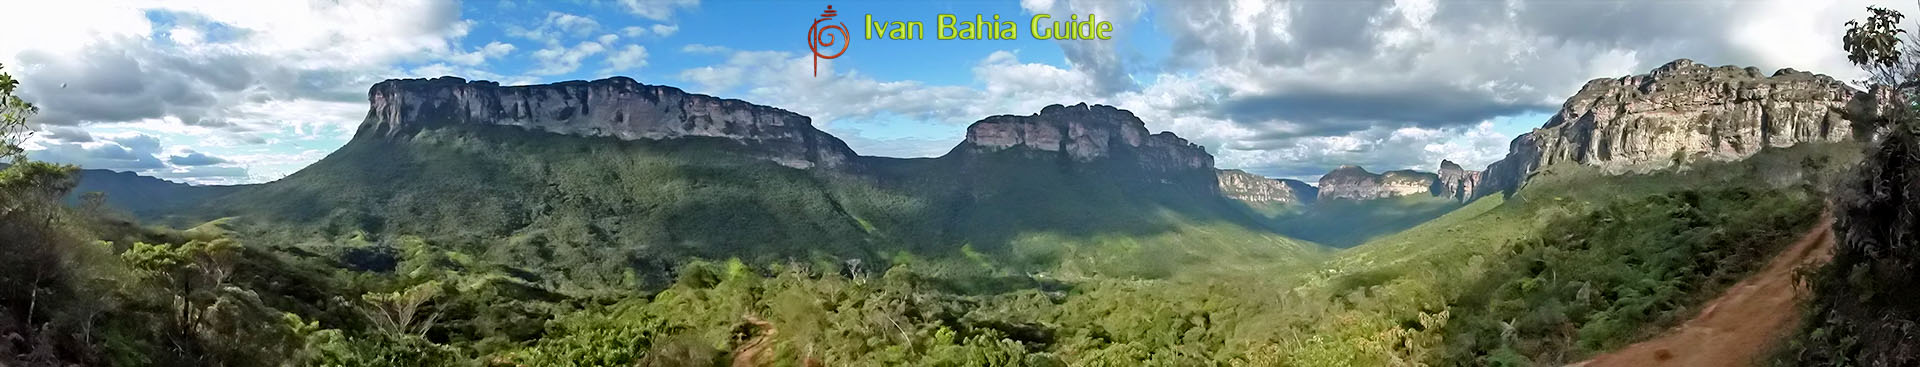 Ivan Bahia tour-guide / hiking in Chapada Diamantina National Park (aka 'the Brazilian Grand Canyon') mountain views while hiking hashtag : #ChapadaDiamantinaGuide #ChapadaDiamantina #ChapadaDiamantinaTrekking #BahiaMetisse #ToursByLocals #fernandobingretourguide #IBG #FotosBahia #DiamantinaMountains #IvanBahiaReizen #IvanChapadaDiamantinaGuide #ValeDoPati #PatiValey #ValeDoCapao #Trajano #Zentur #chapadatrekking #TrilhasDiamantina #morodopaiinacio #lencois #poçoazul #ecoturismo